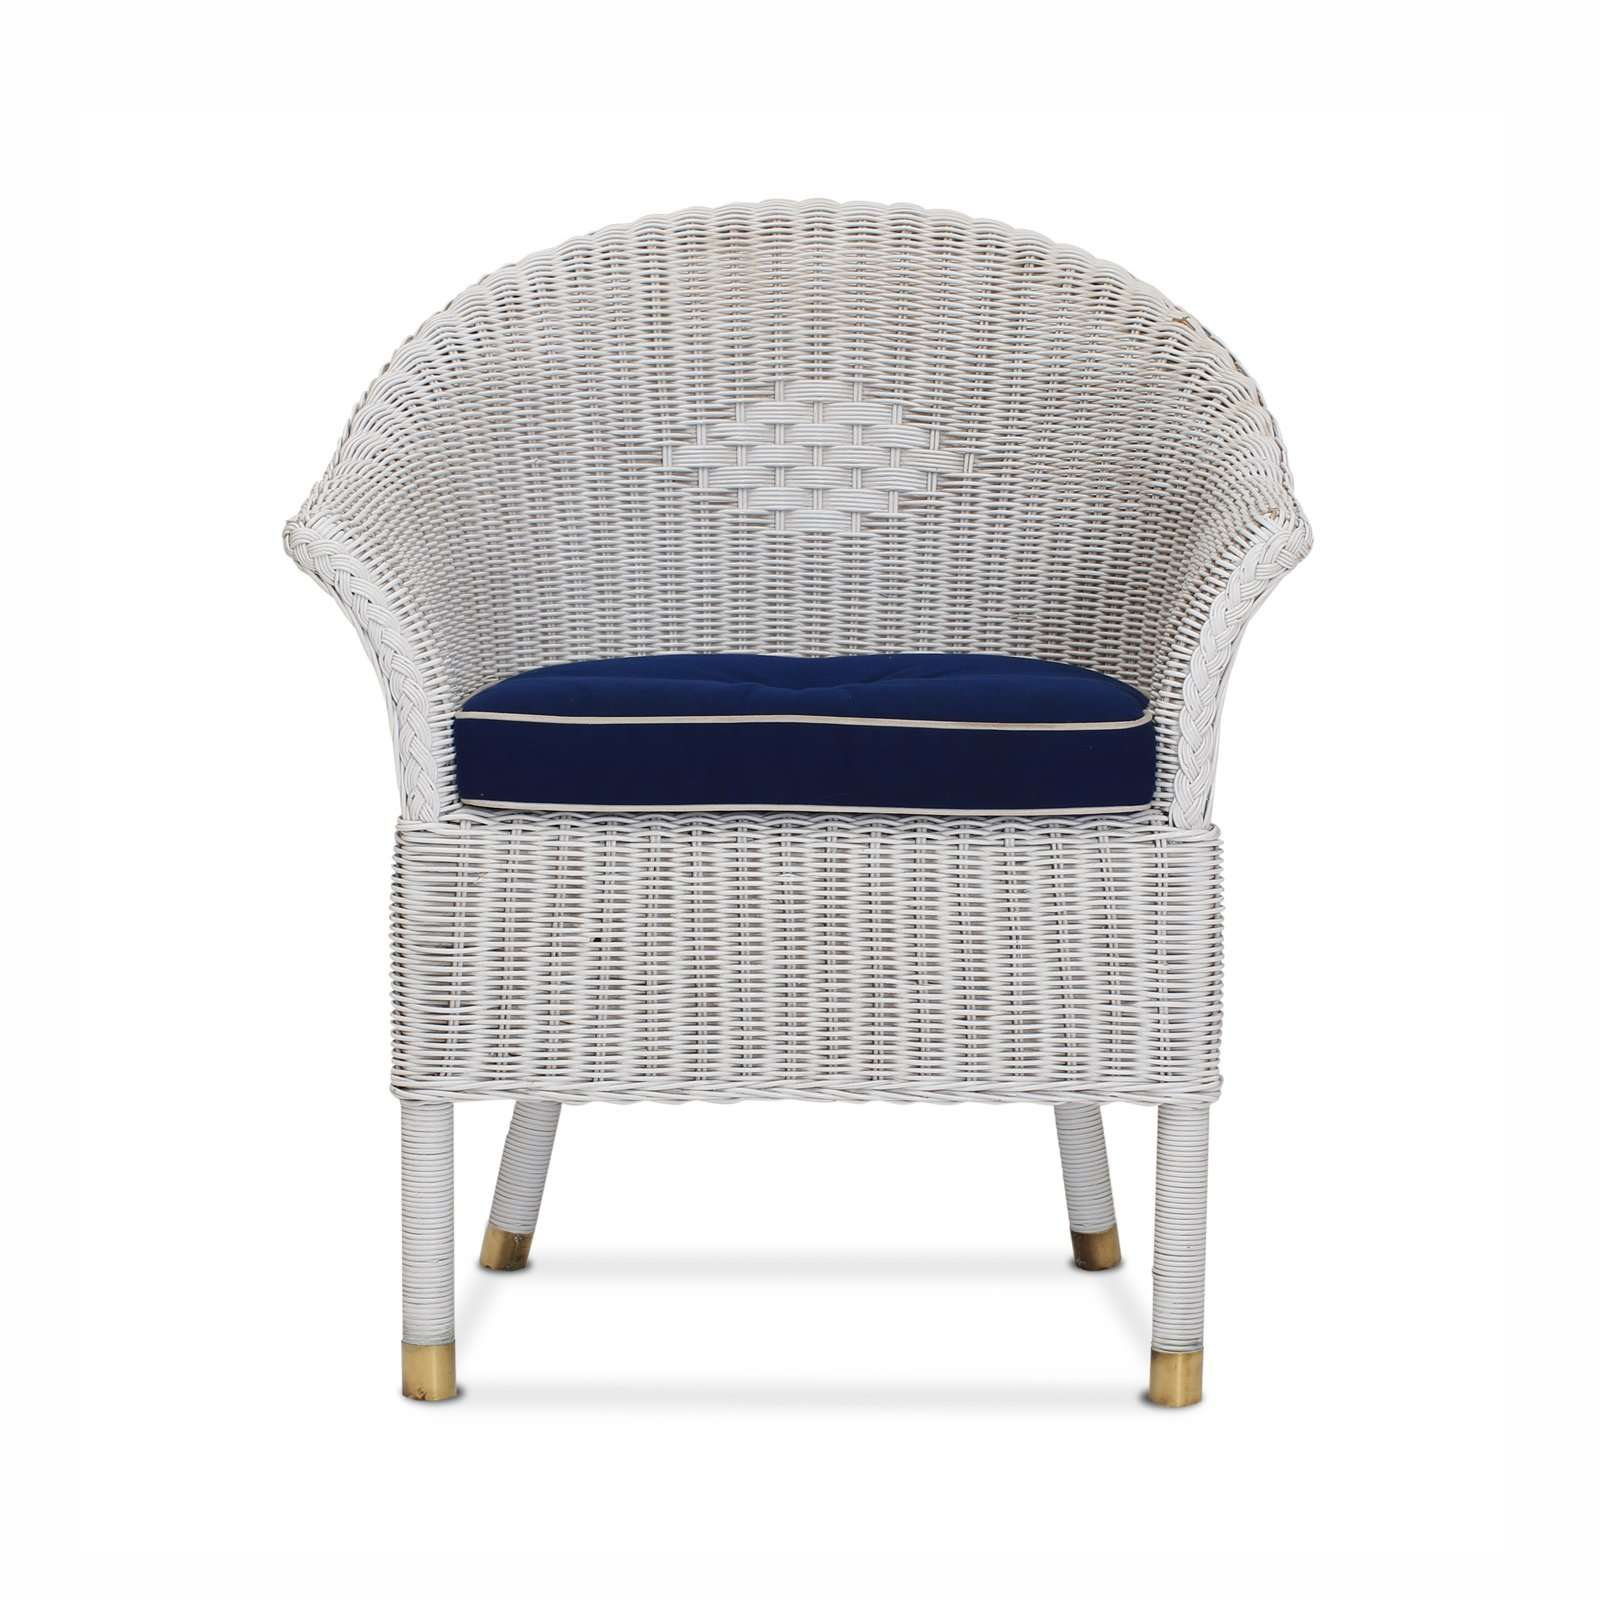 CALYPSO DINING CHAIR 1 - STUART MEMBERY HOME COLLECTION